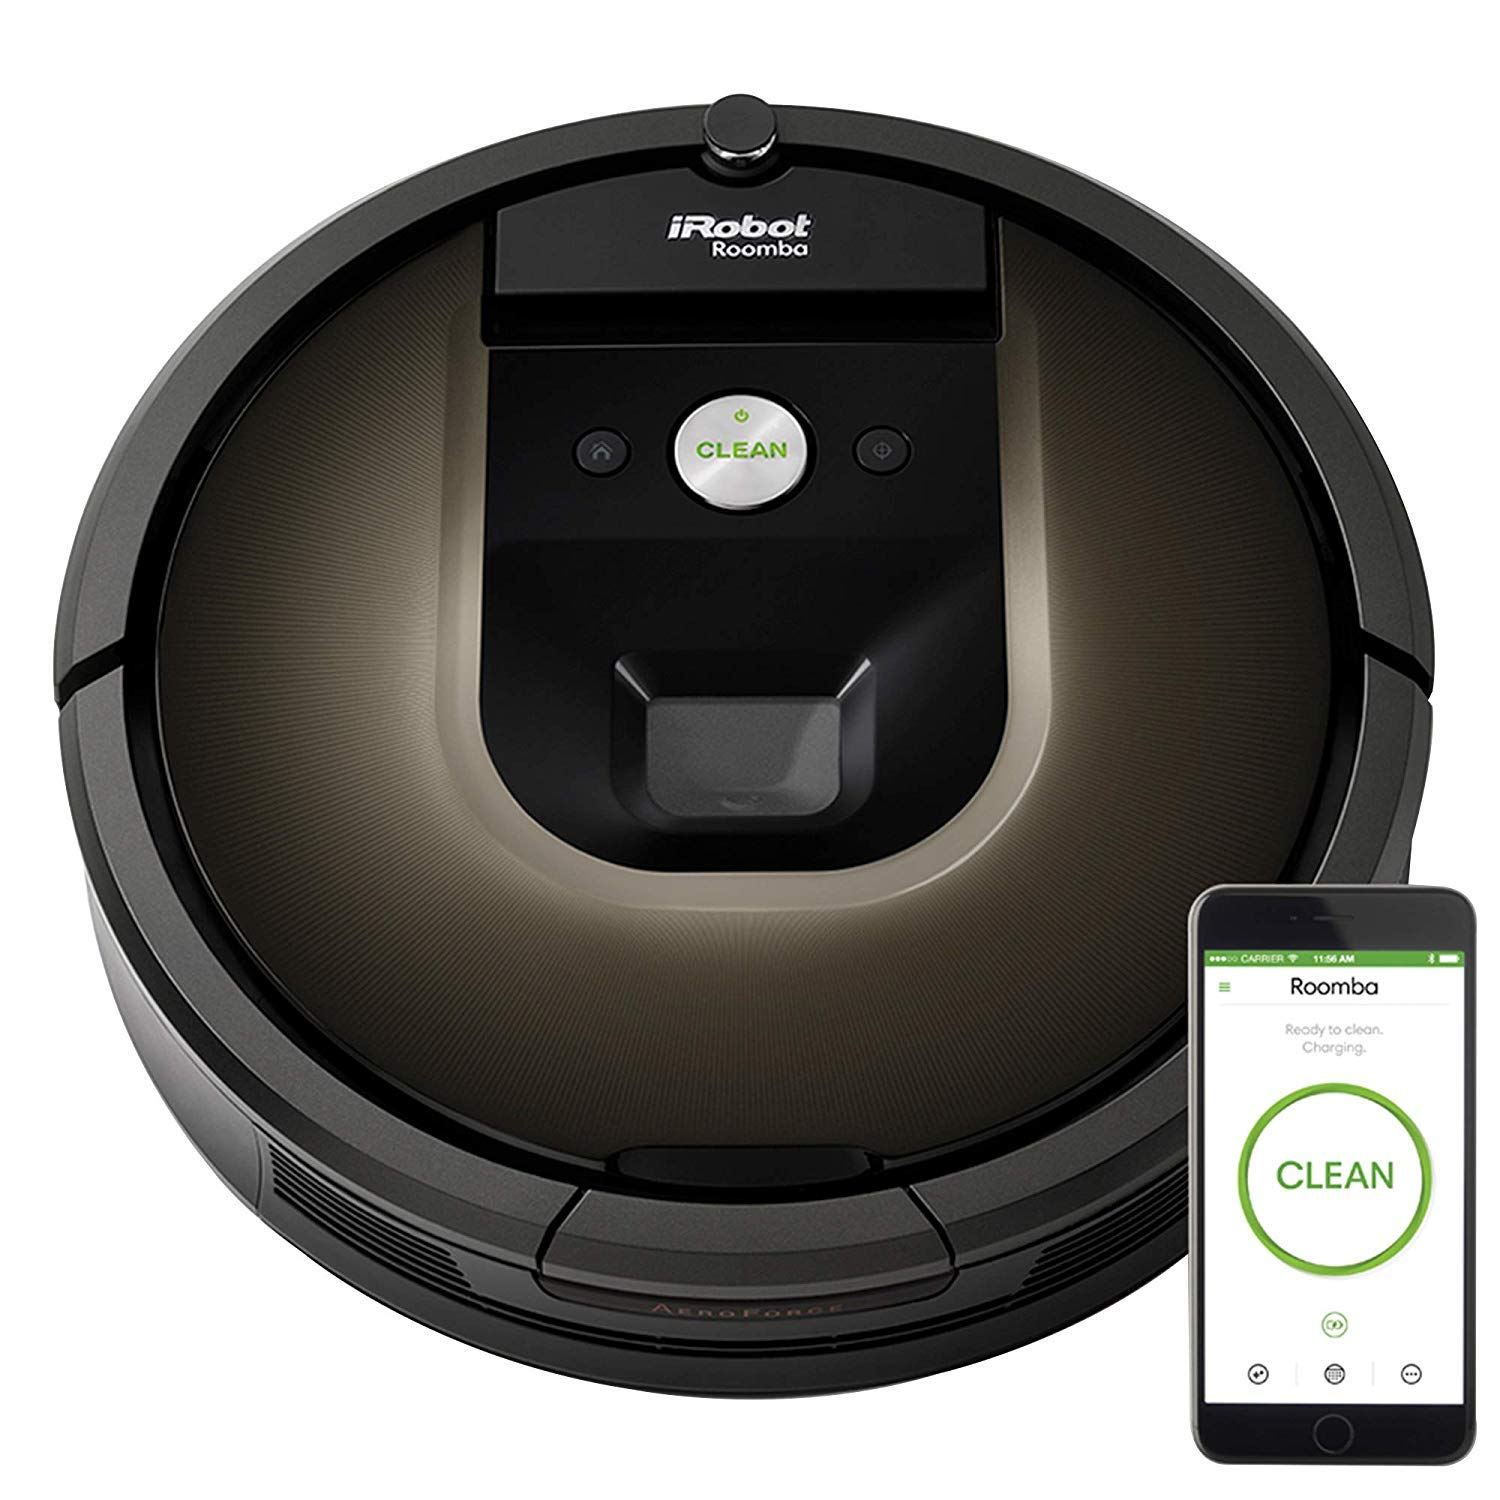 iRobot Roomba 980 Robot Vacuum-Wi-Fi Connected Mapping, Works with Alexa, Ideal for Pet Hair, Carpets, Hard Floors, Power ...